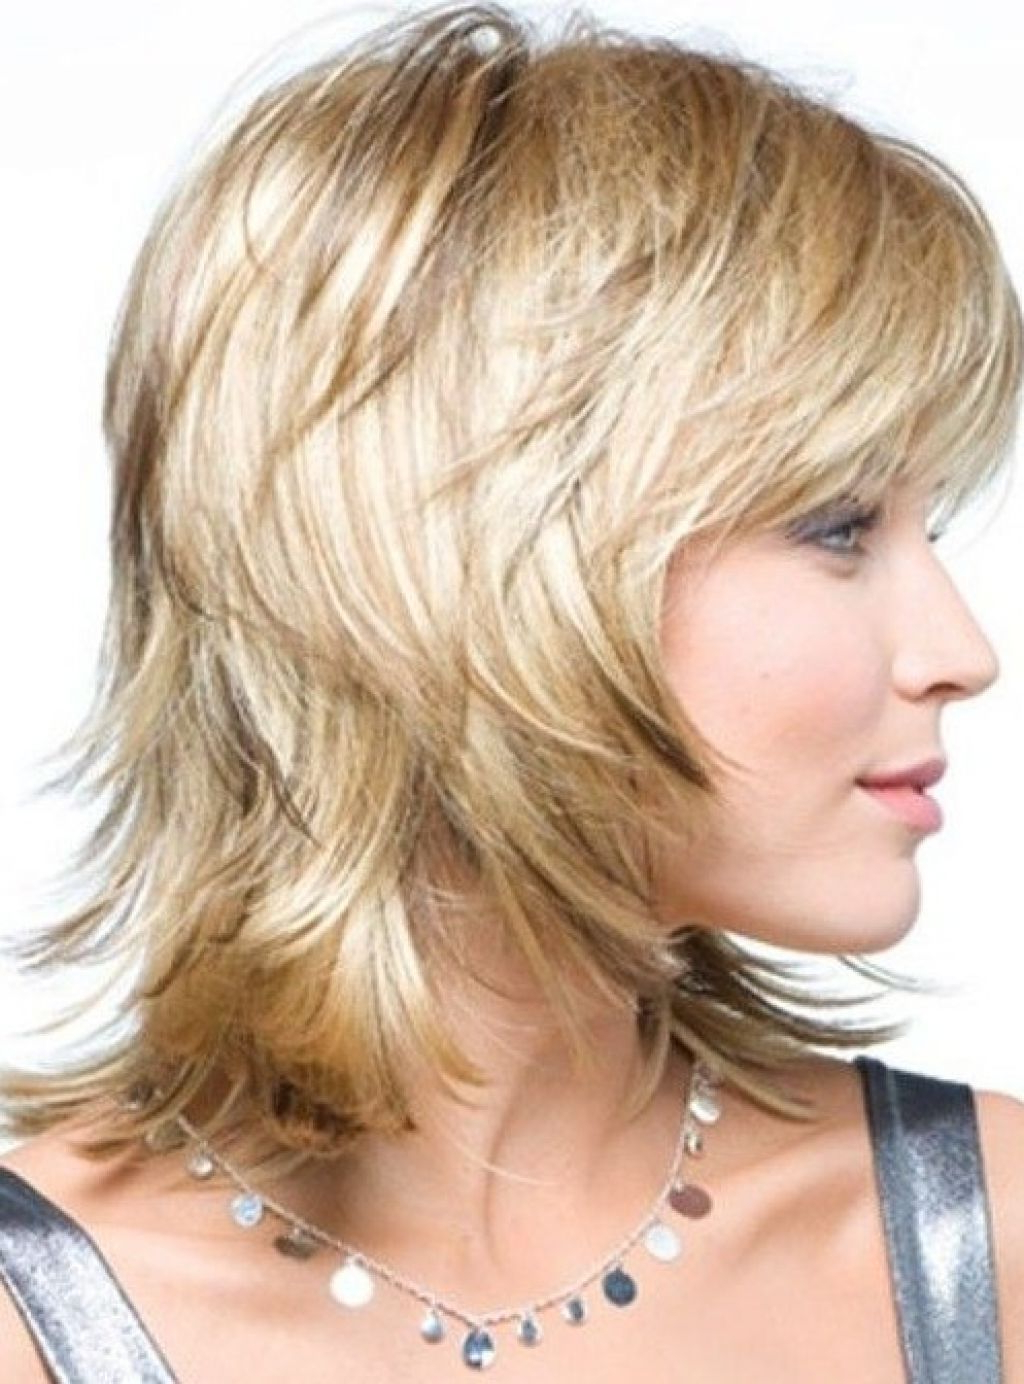 Medium Hairstyles To Make You Look Younger | Womens Hairstyles In Pure Blonde Shorter Hairstyles For Older Women (View 4 of 20)